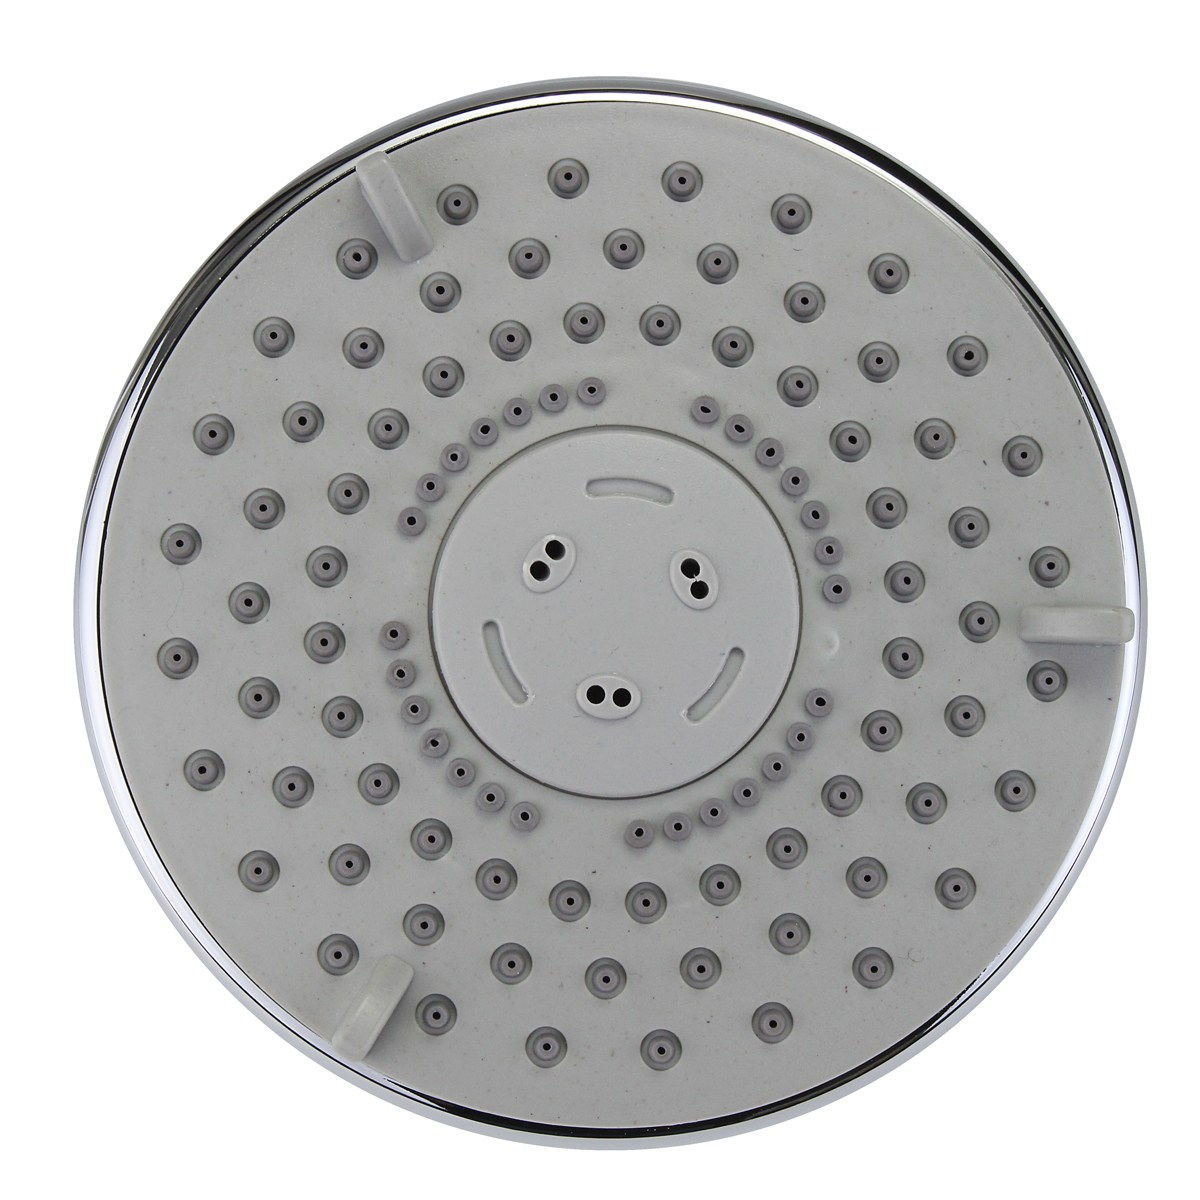 High Pressure 5inch Fixed Shower Head ABS Rainfall Shower Heads Over ...